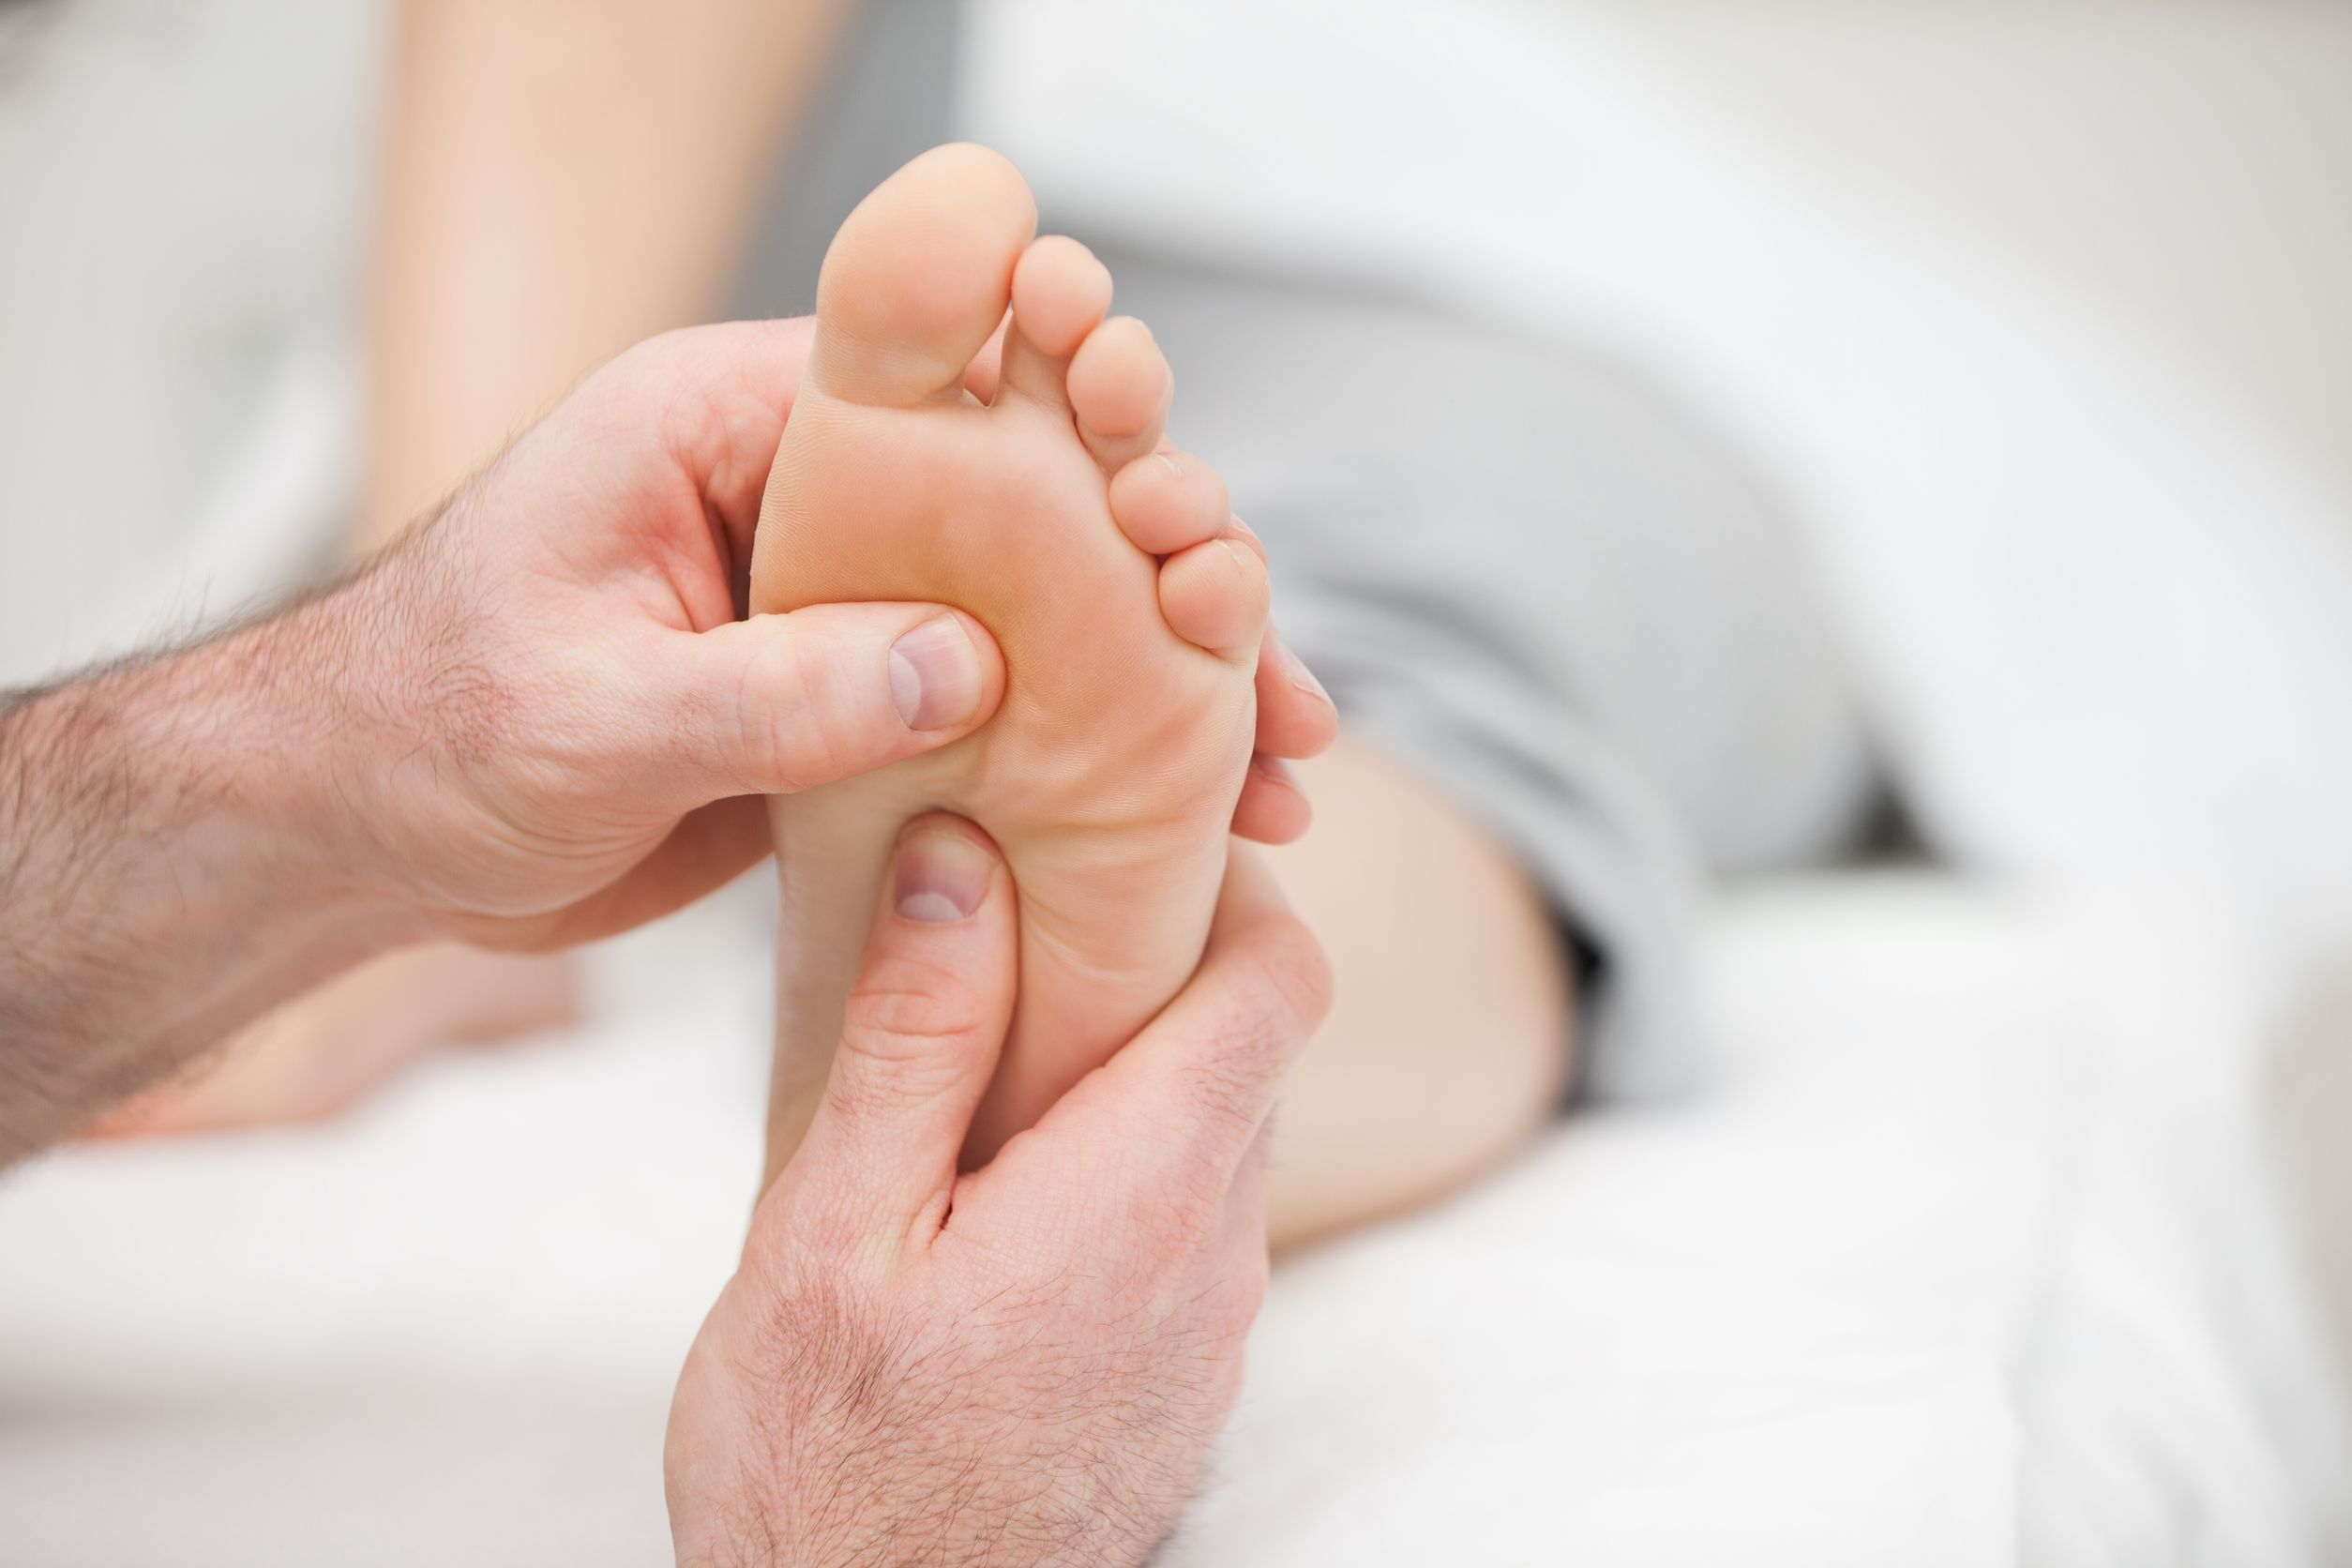 A doctor examining a woman with foot and ankle pain